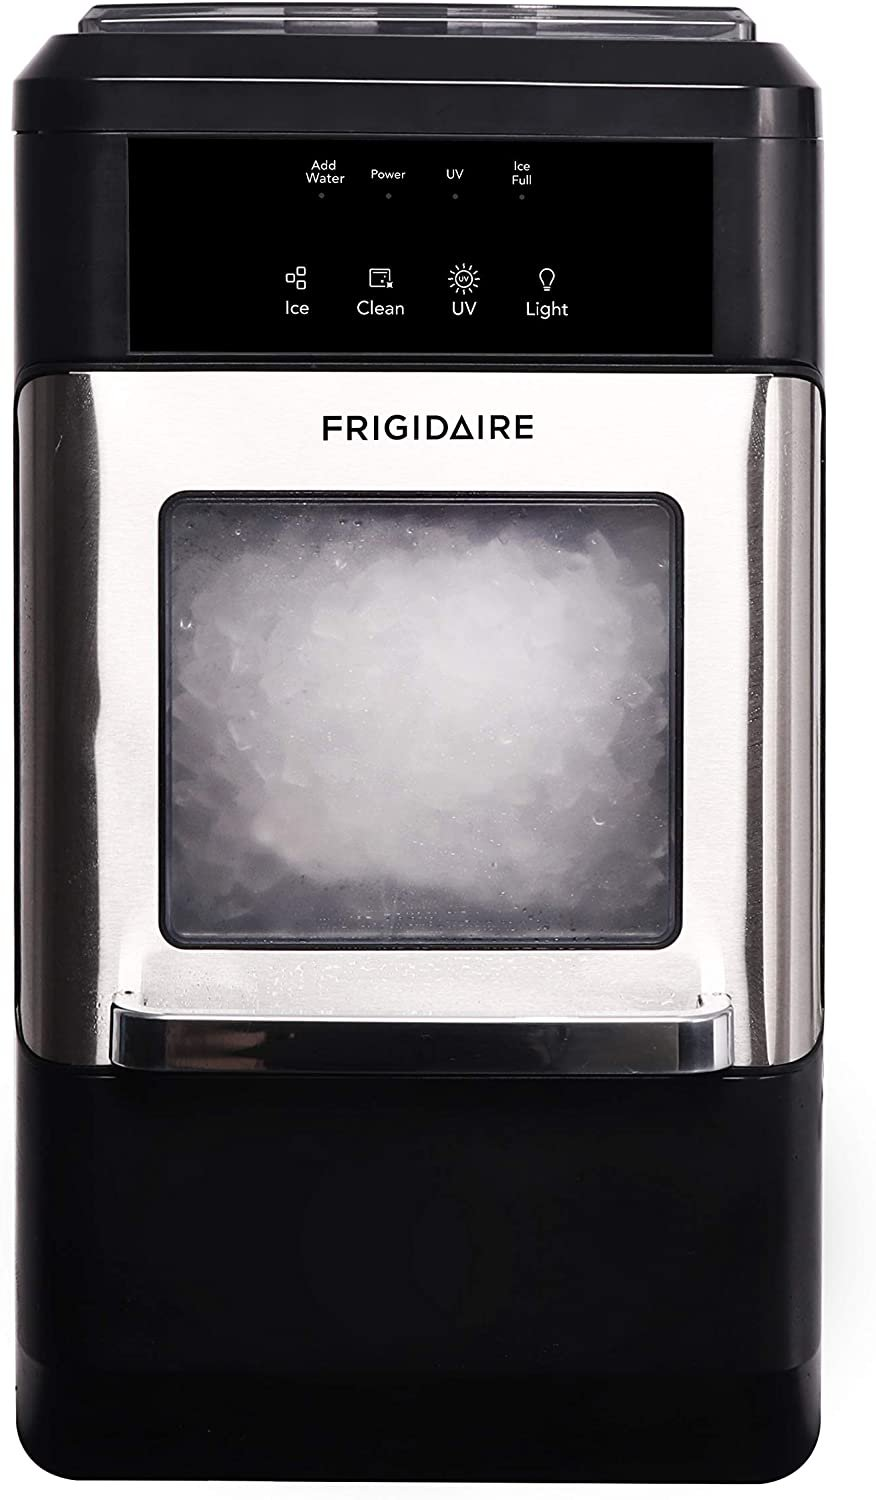 FRIGIDAIRE EFIC235-AMZ Countertop Crunchy Chewable Nugget Ice Maker, 44lbs per Day